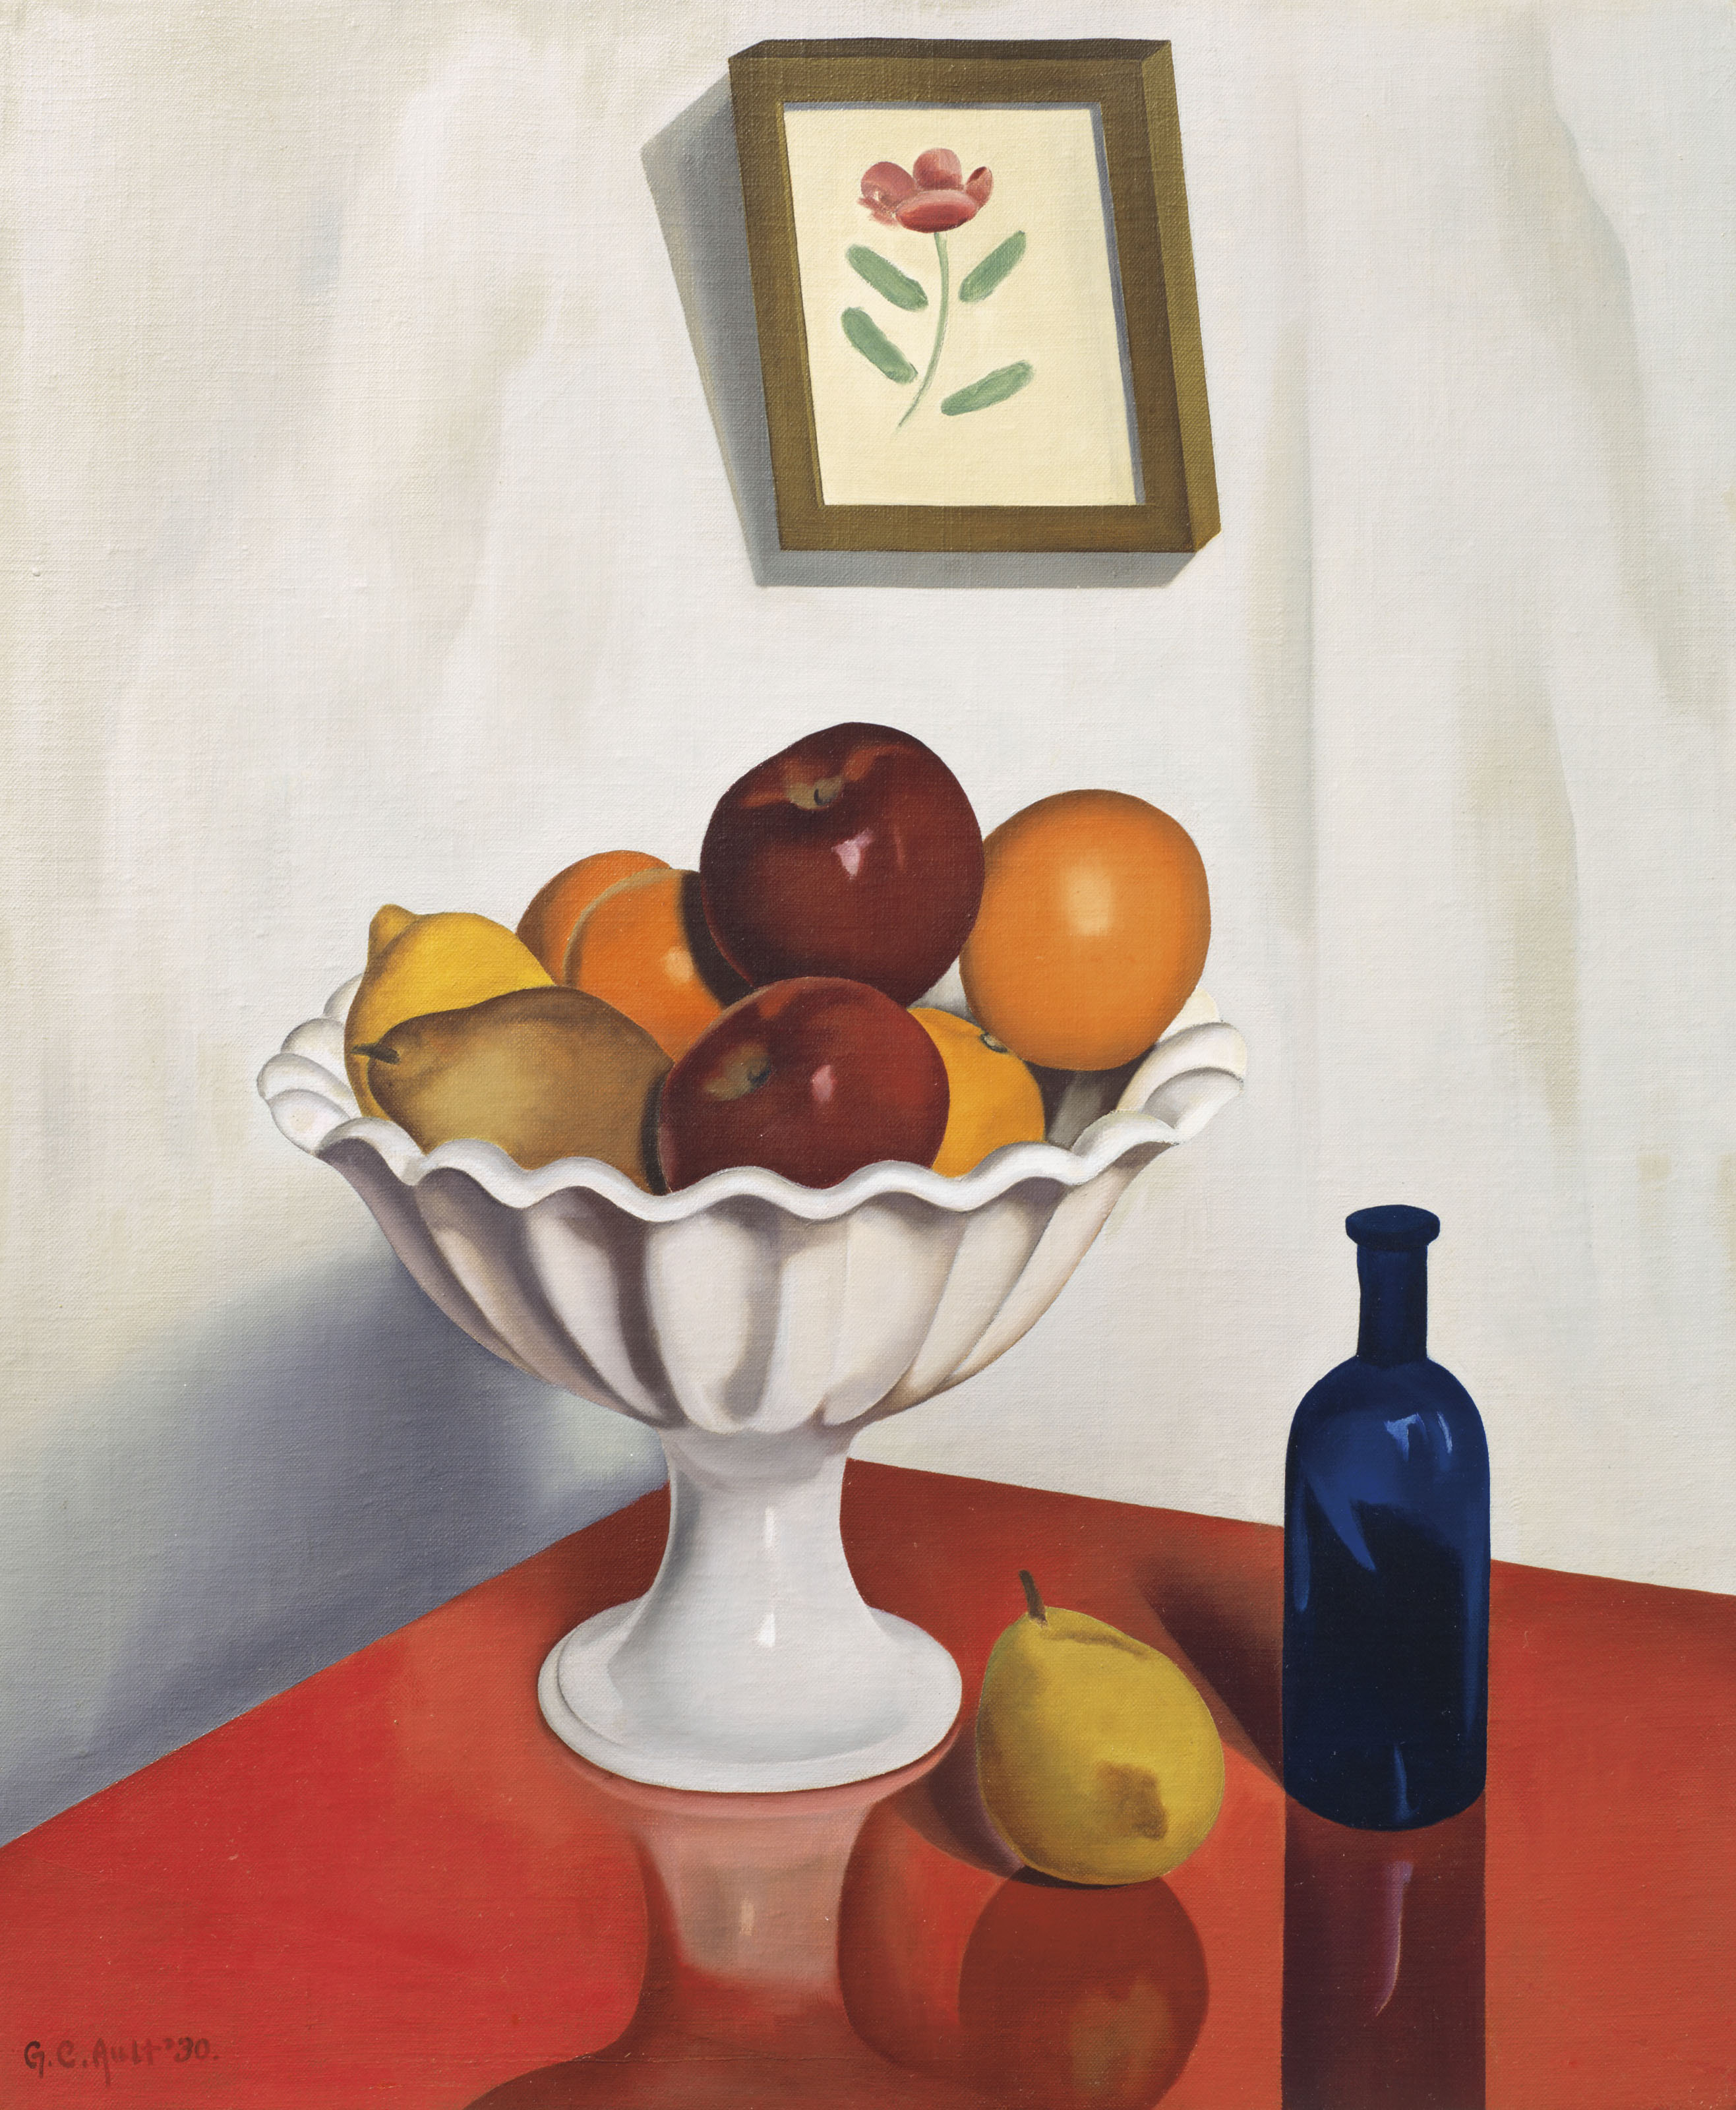 Fruit Bowl on Red Oilcloth, by George Copeland Ault, 1930